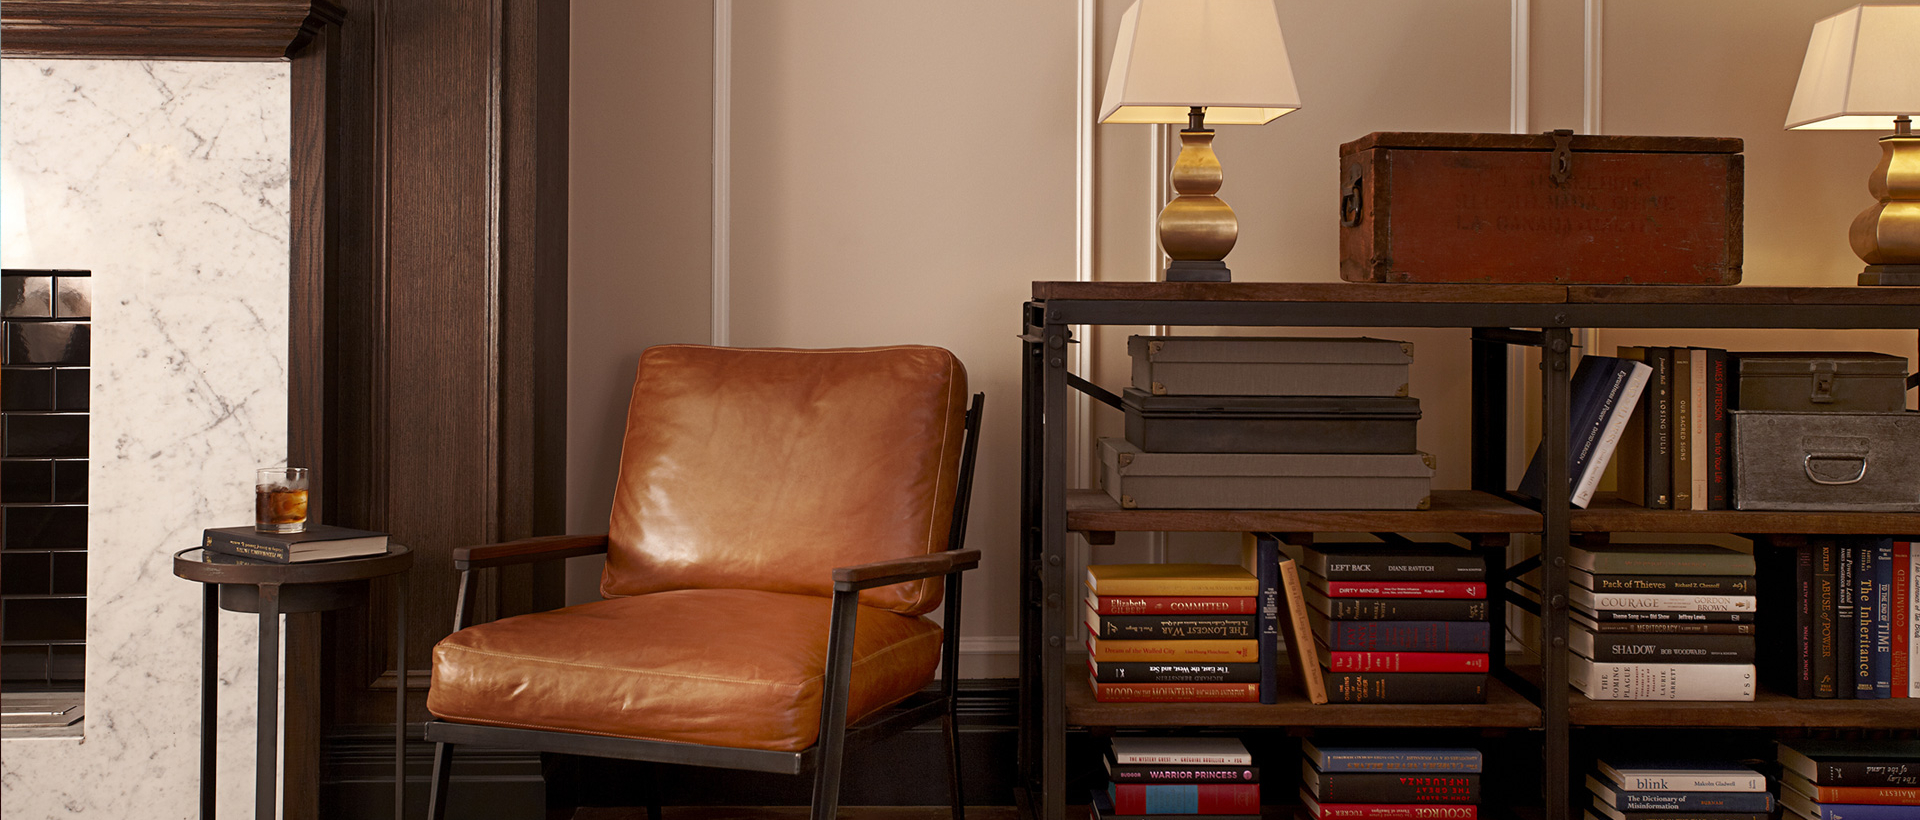 Leather chair next to furniture with stacked books